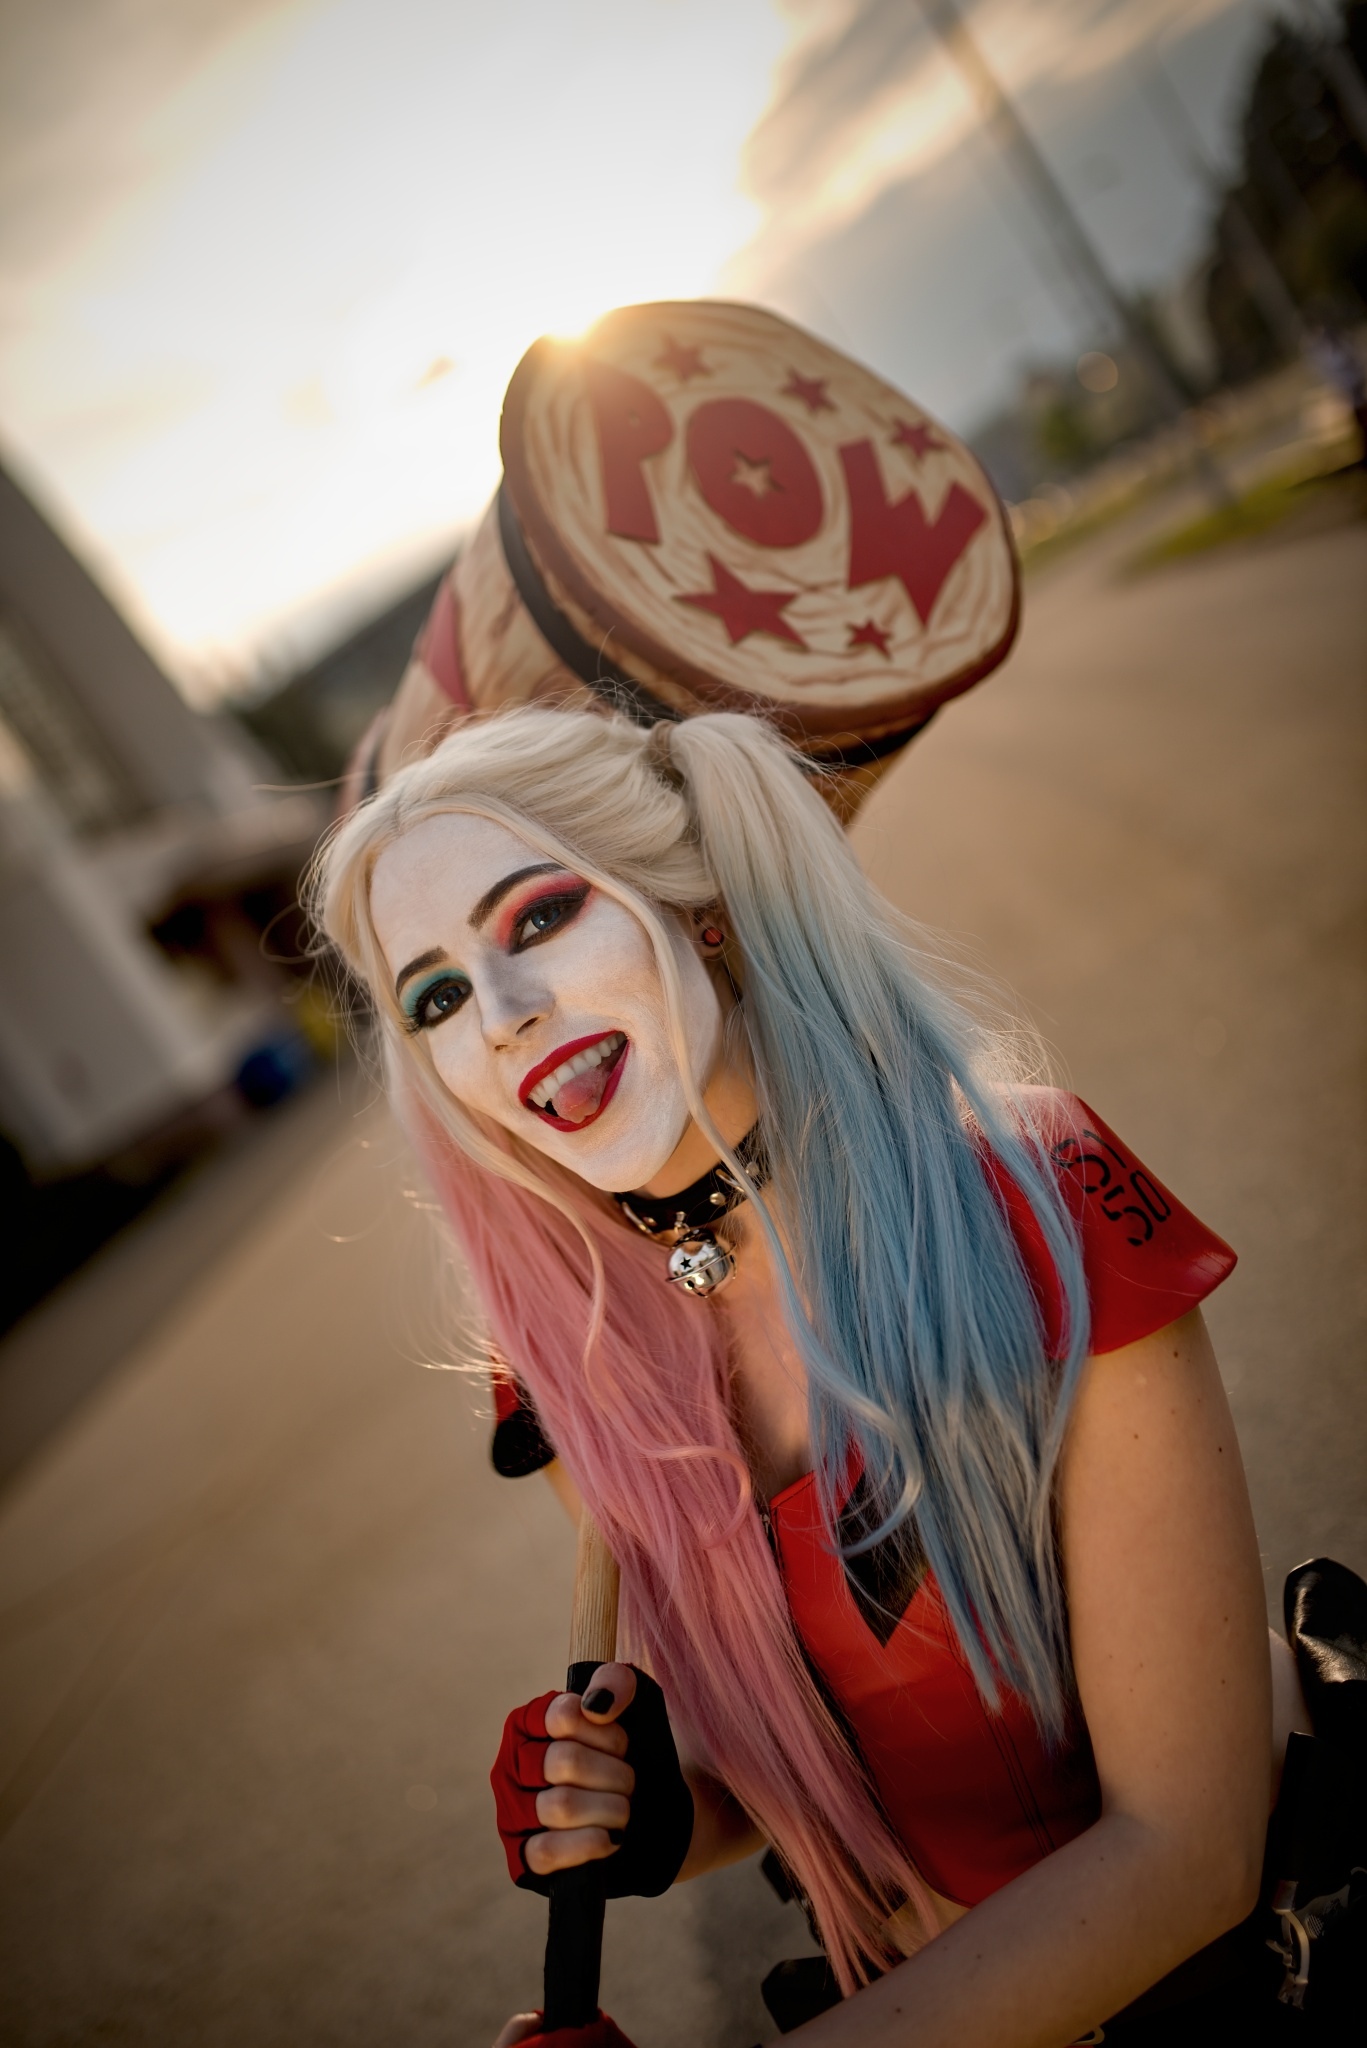 How to Photograph a Cosplay - Harley Quinn cosplay